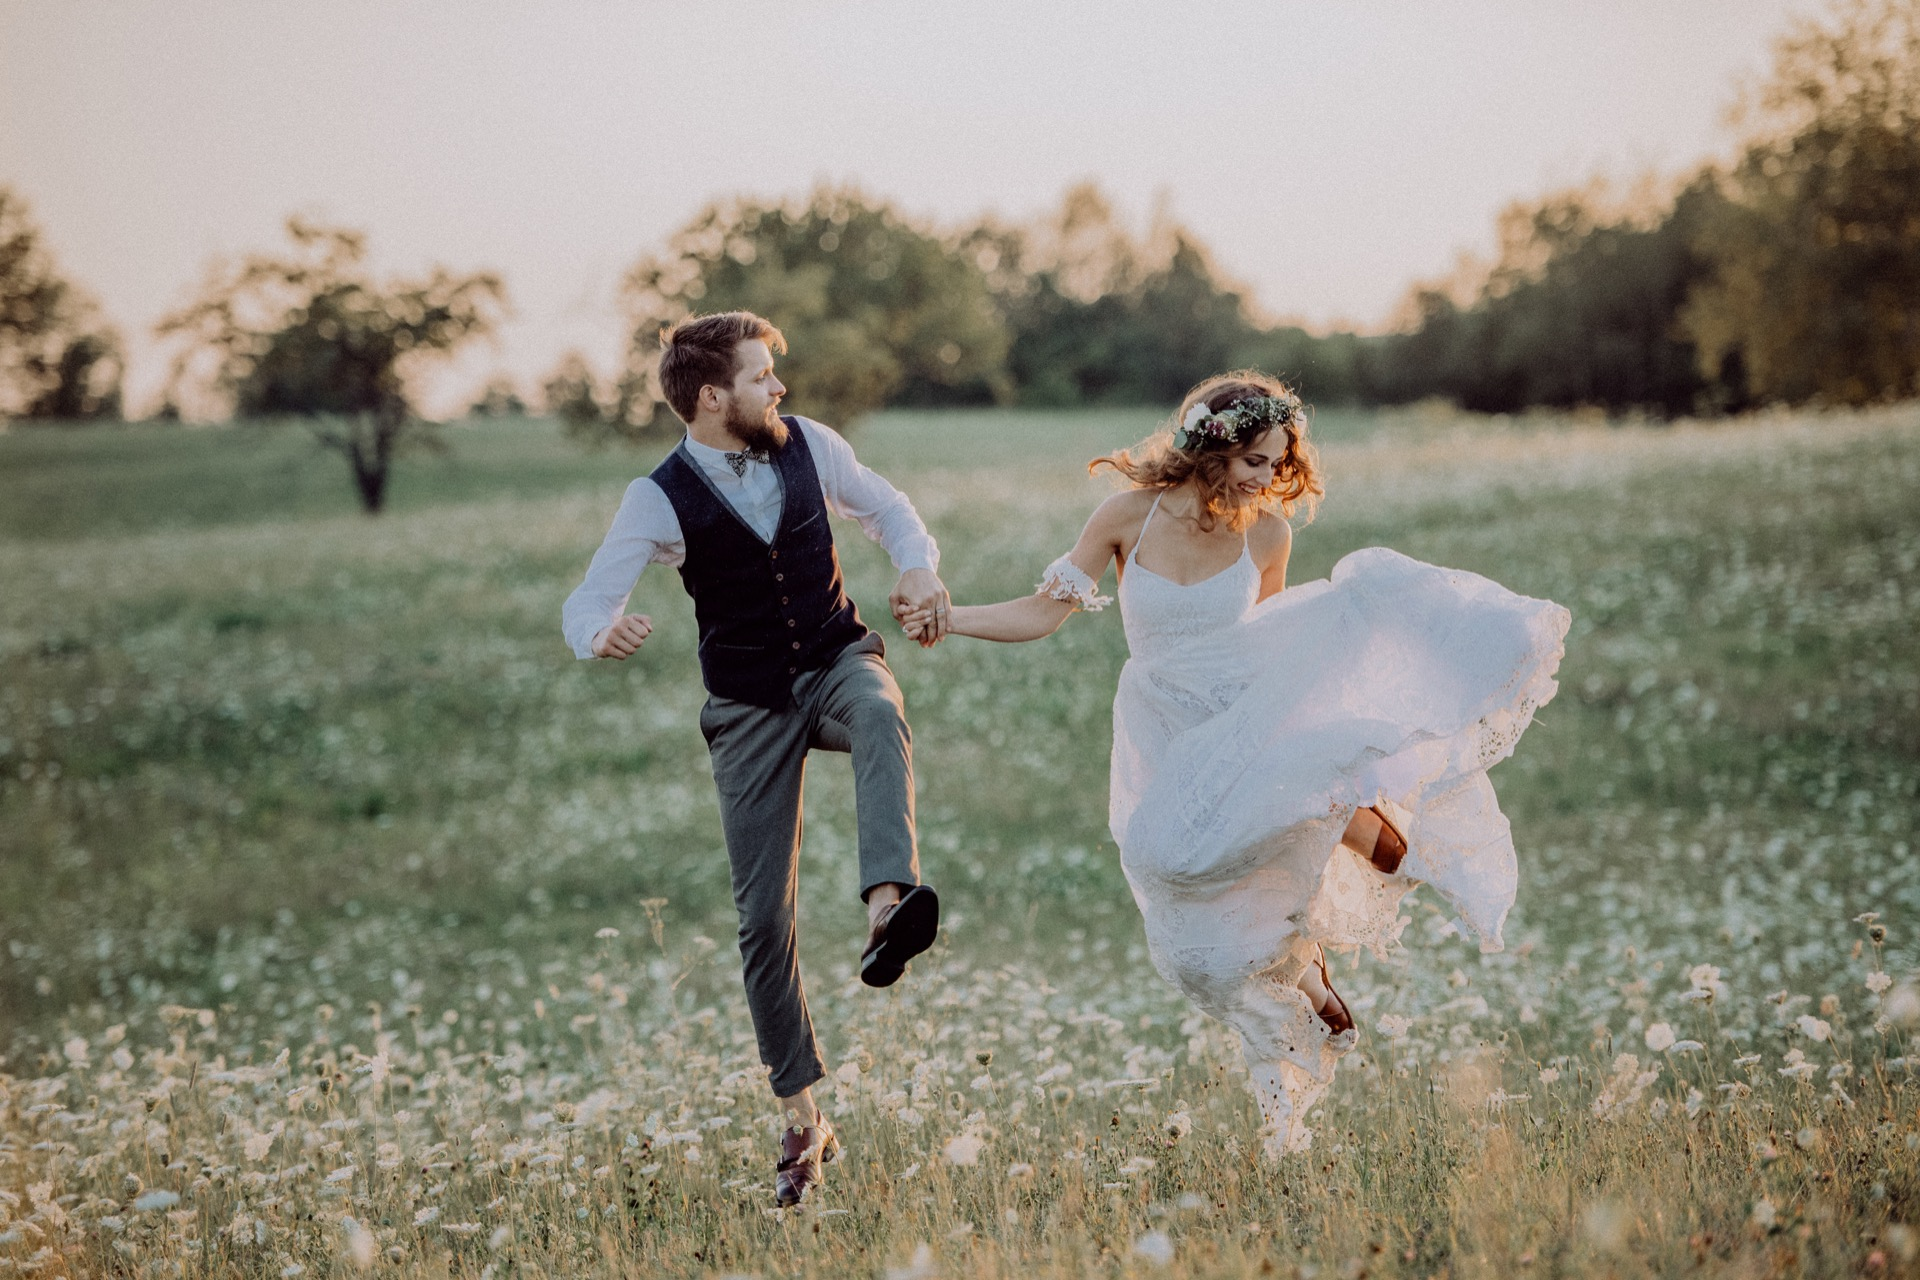 beautiful-bride-and-groom-at-sunset-in-green-natur-PS3WDVS.jpg